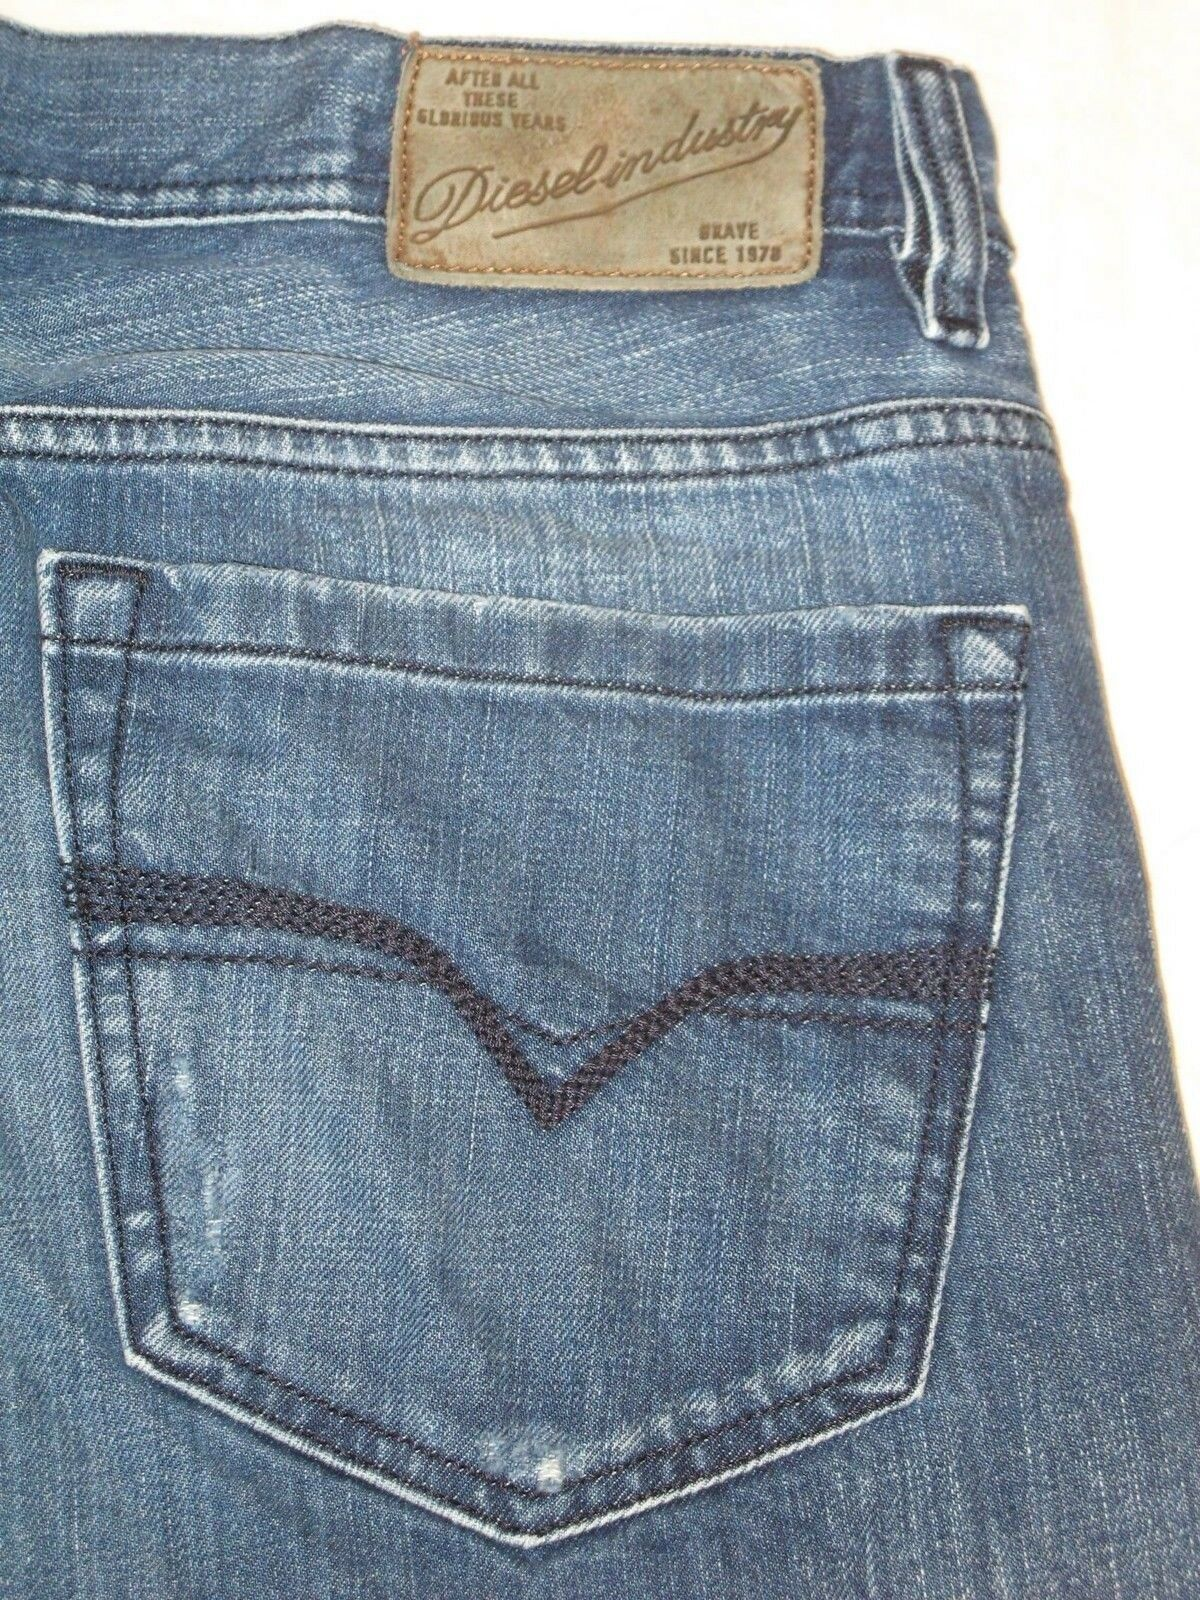 Diesel Quratt Jeans Men Sz 33 X 27 Relaxed Straight Leg Distressed 8GA